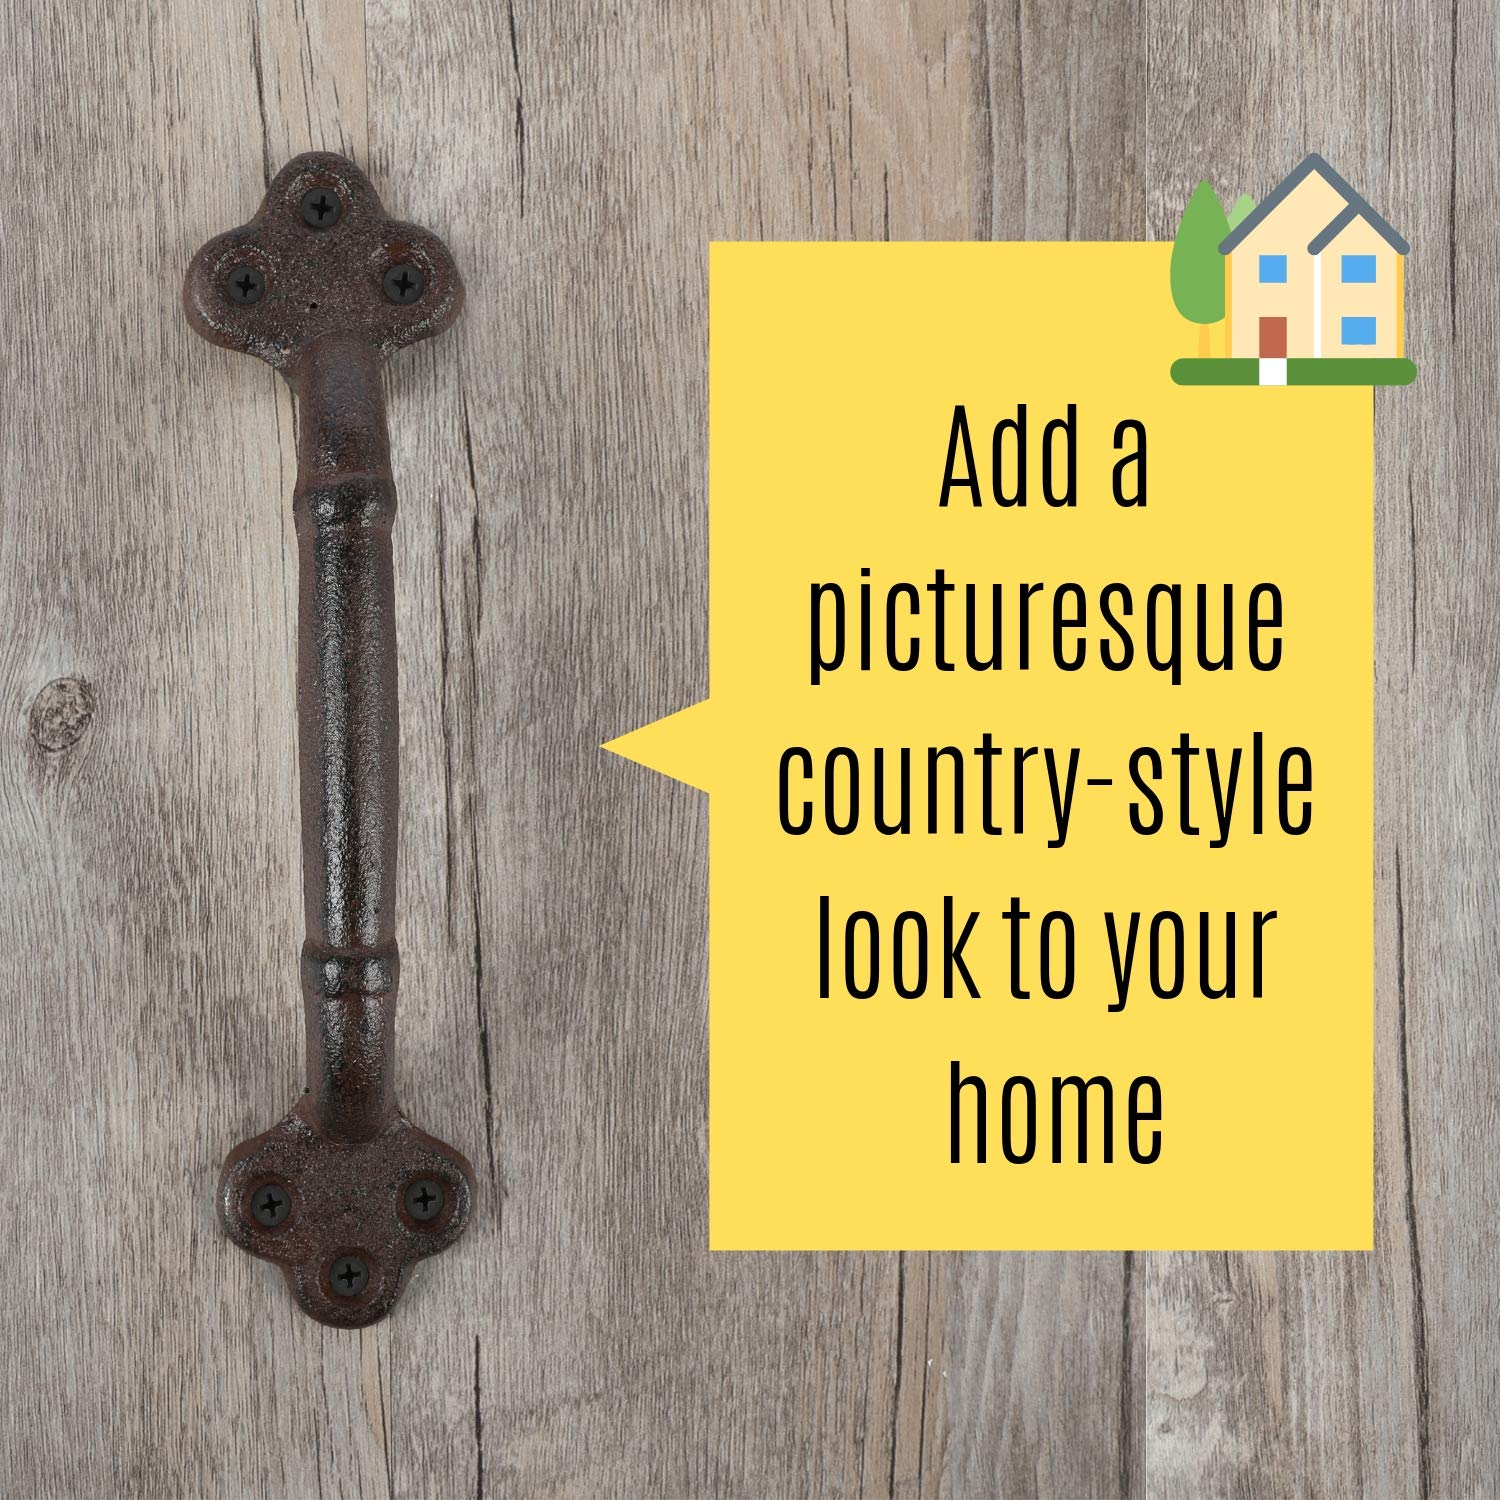 """Cast Iron Antique Shed Pull Farm Sliding Doors Exterior Rustic Handles 1.5/"""" x 2/"""" Base Gate Hardware 8.75/"""" L Trunk For Garage 2 Pack Crate Wooden Fence Houseables Barn Door Handle Chest"""